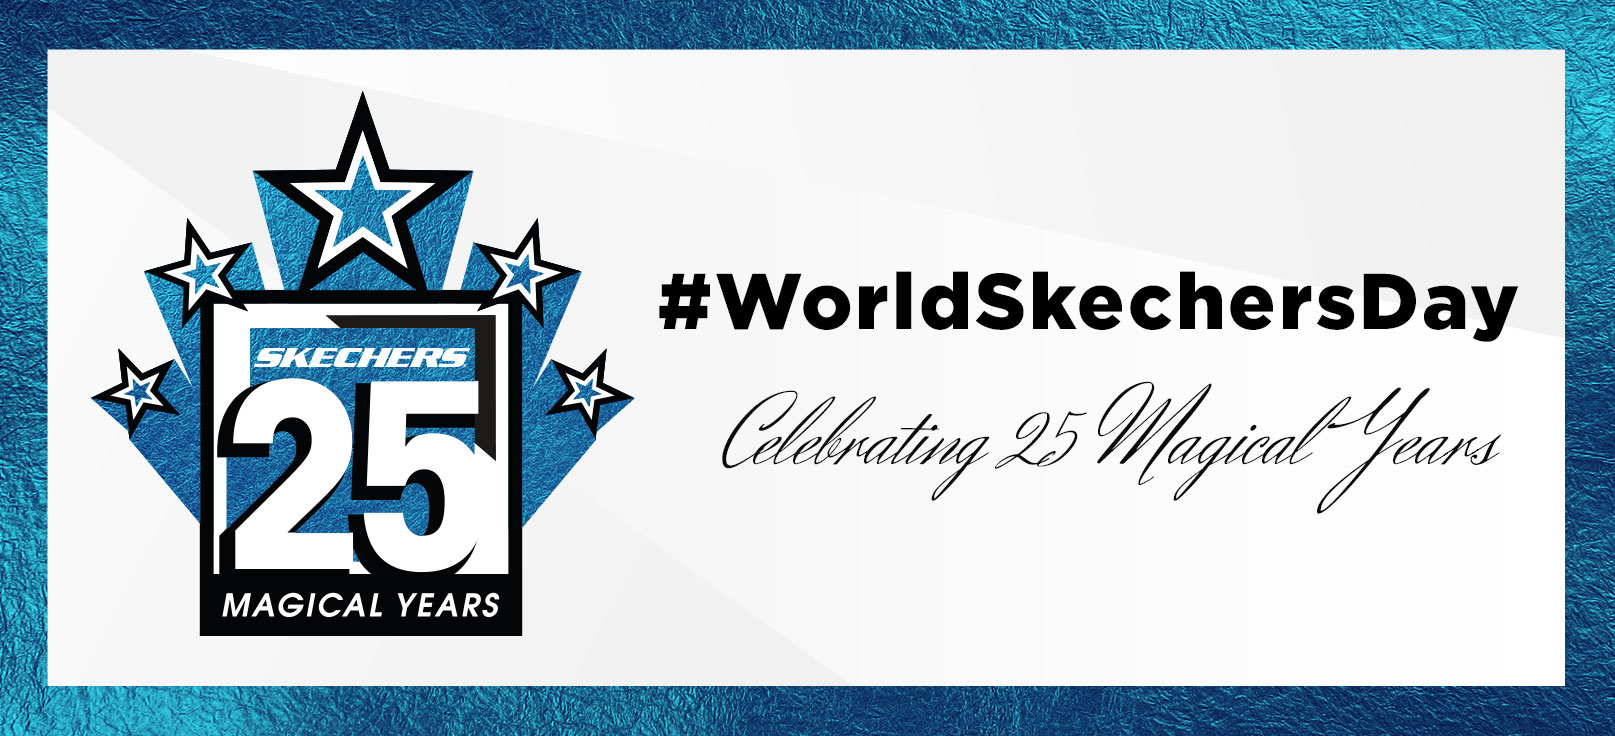 Celebrate World Skechers Day and celebrate our 25th Anniversary!